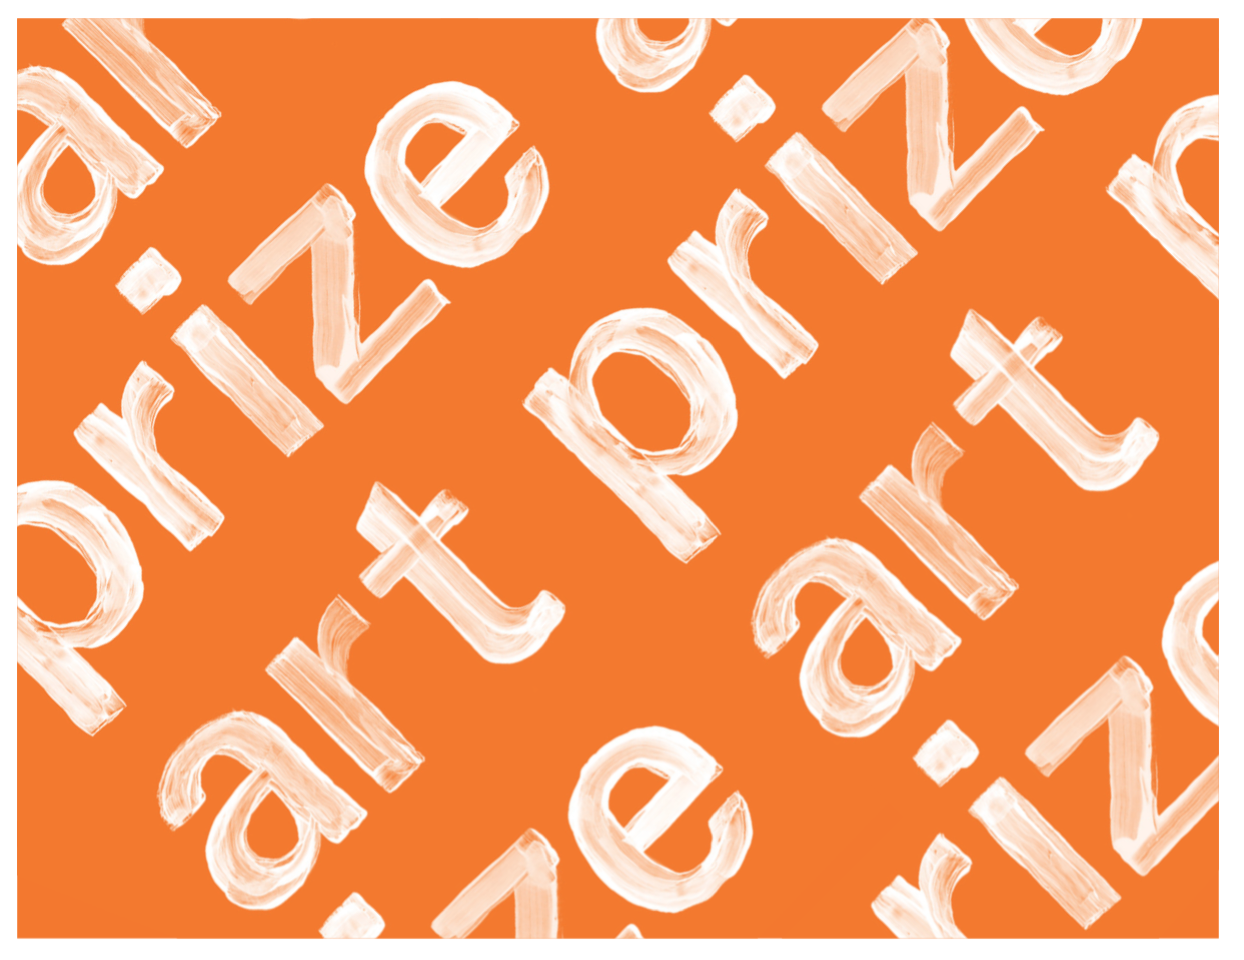 2016 Geelong contemporary art prize image